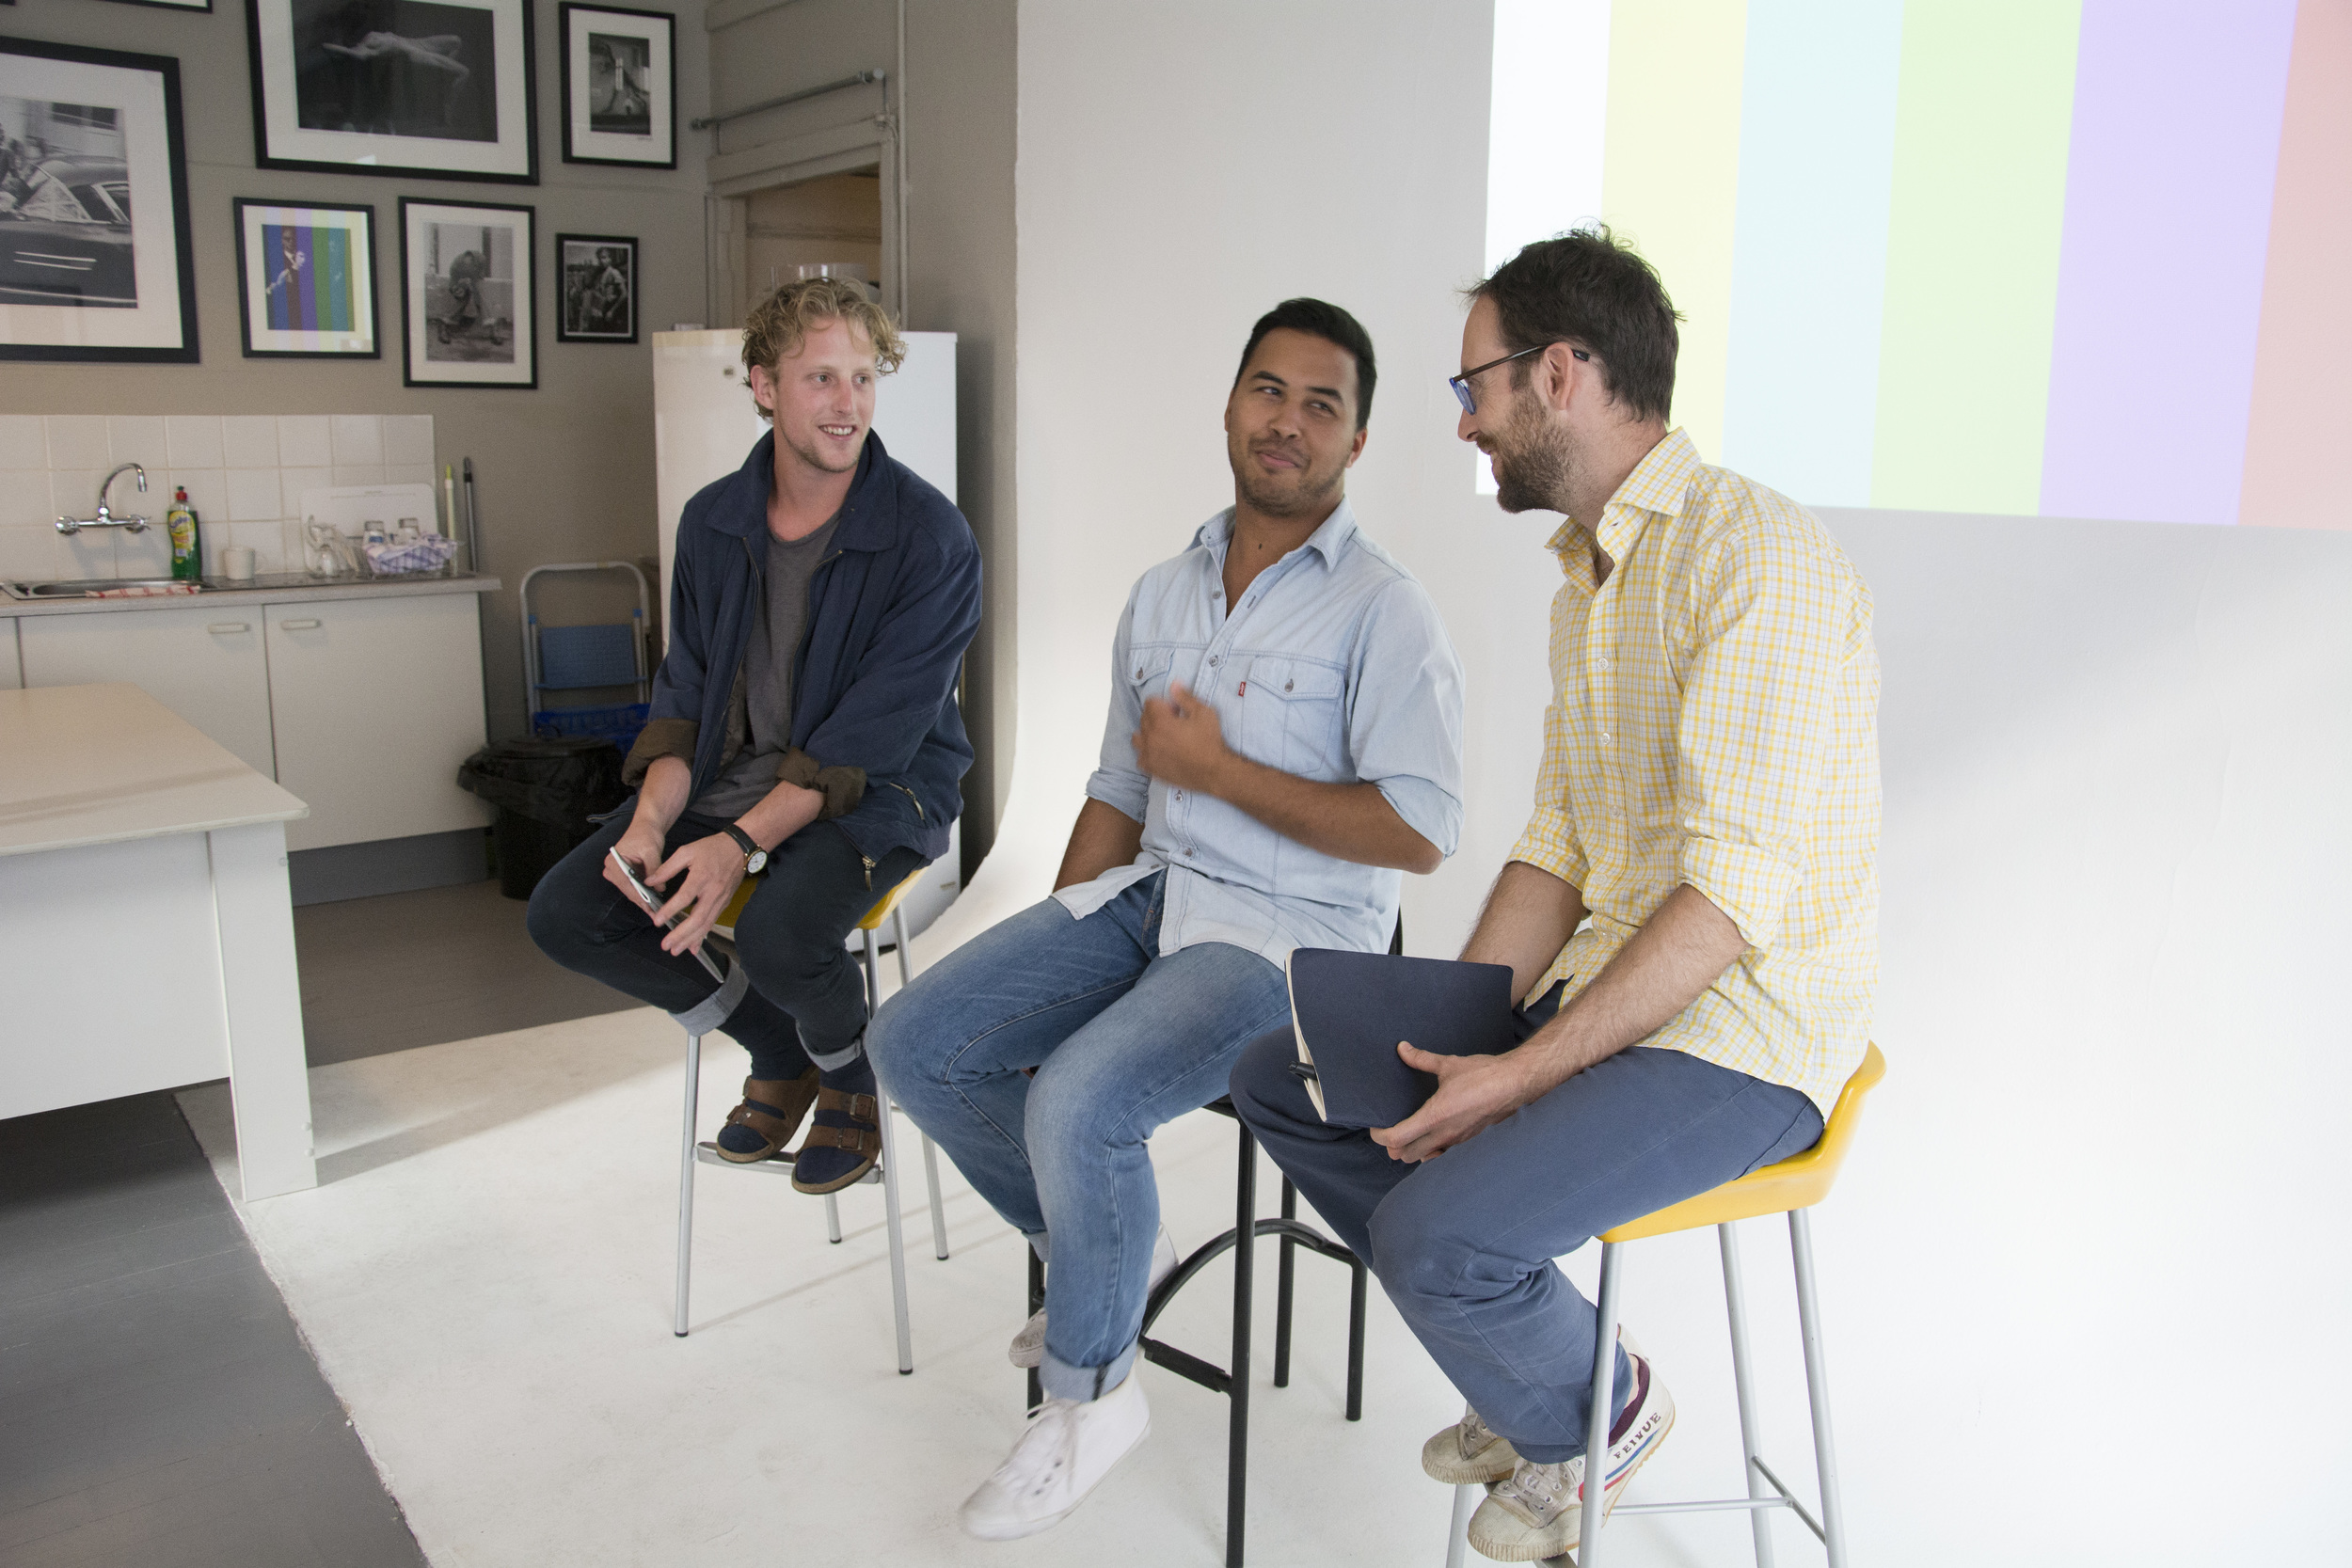 Jake Singer (left), Rashiq Fatar and Gaelen Pinnock ready for good conversation at Gallery F